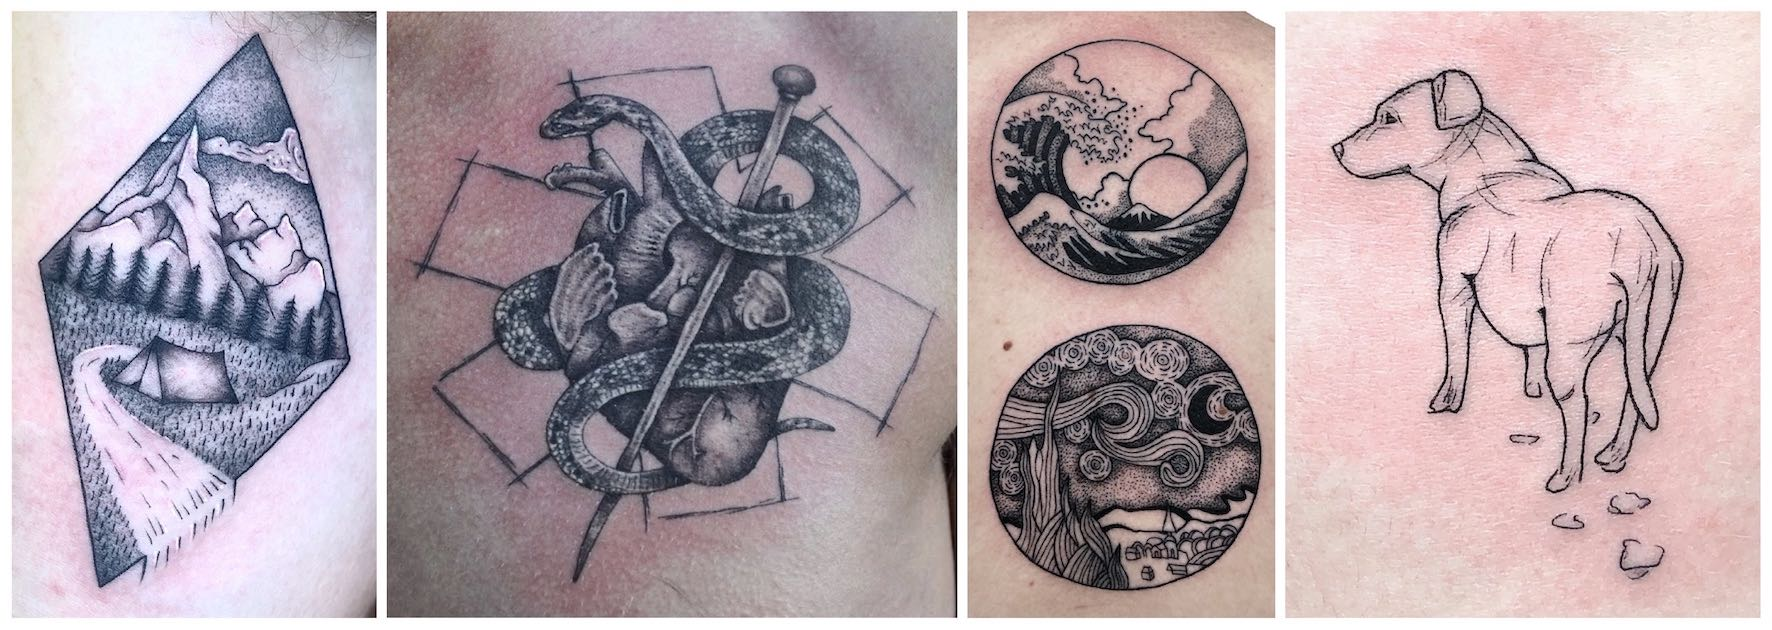 A selection of tattoos done by Shelby Downey